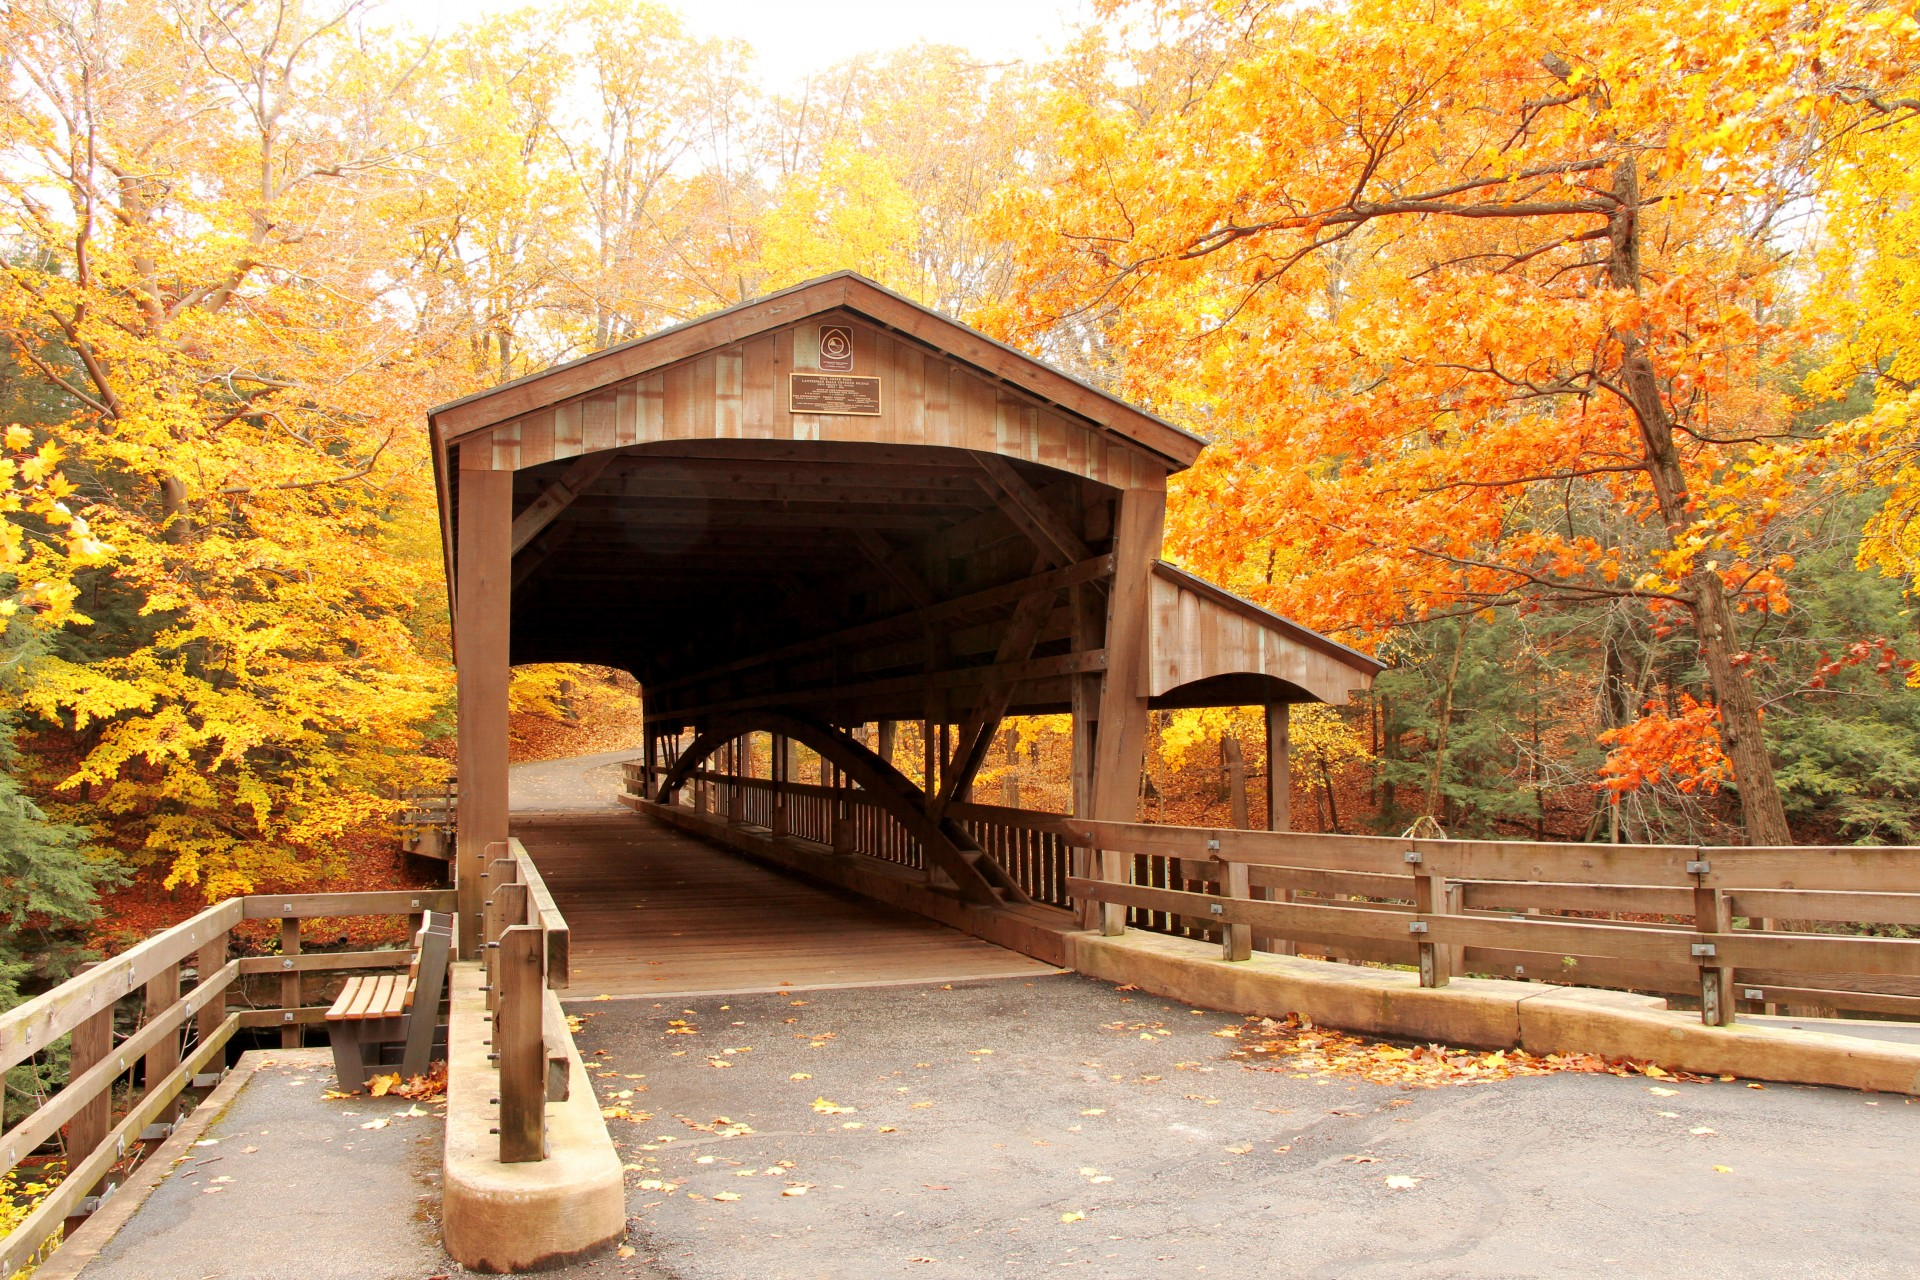 Free Fall Colors Wallpaper Covered Bridge In Forest 2 Free Stock Photo Public